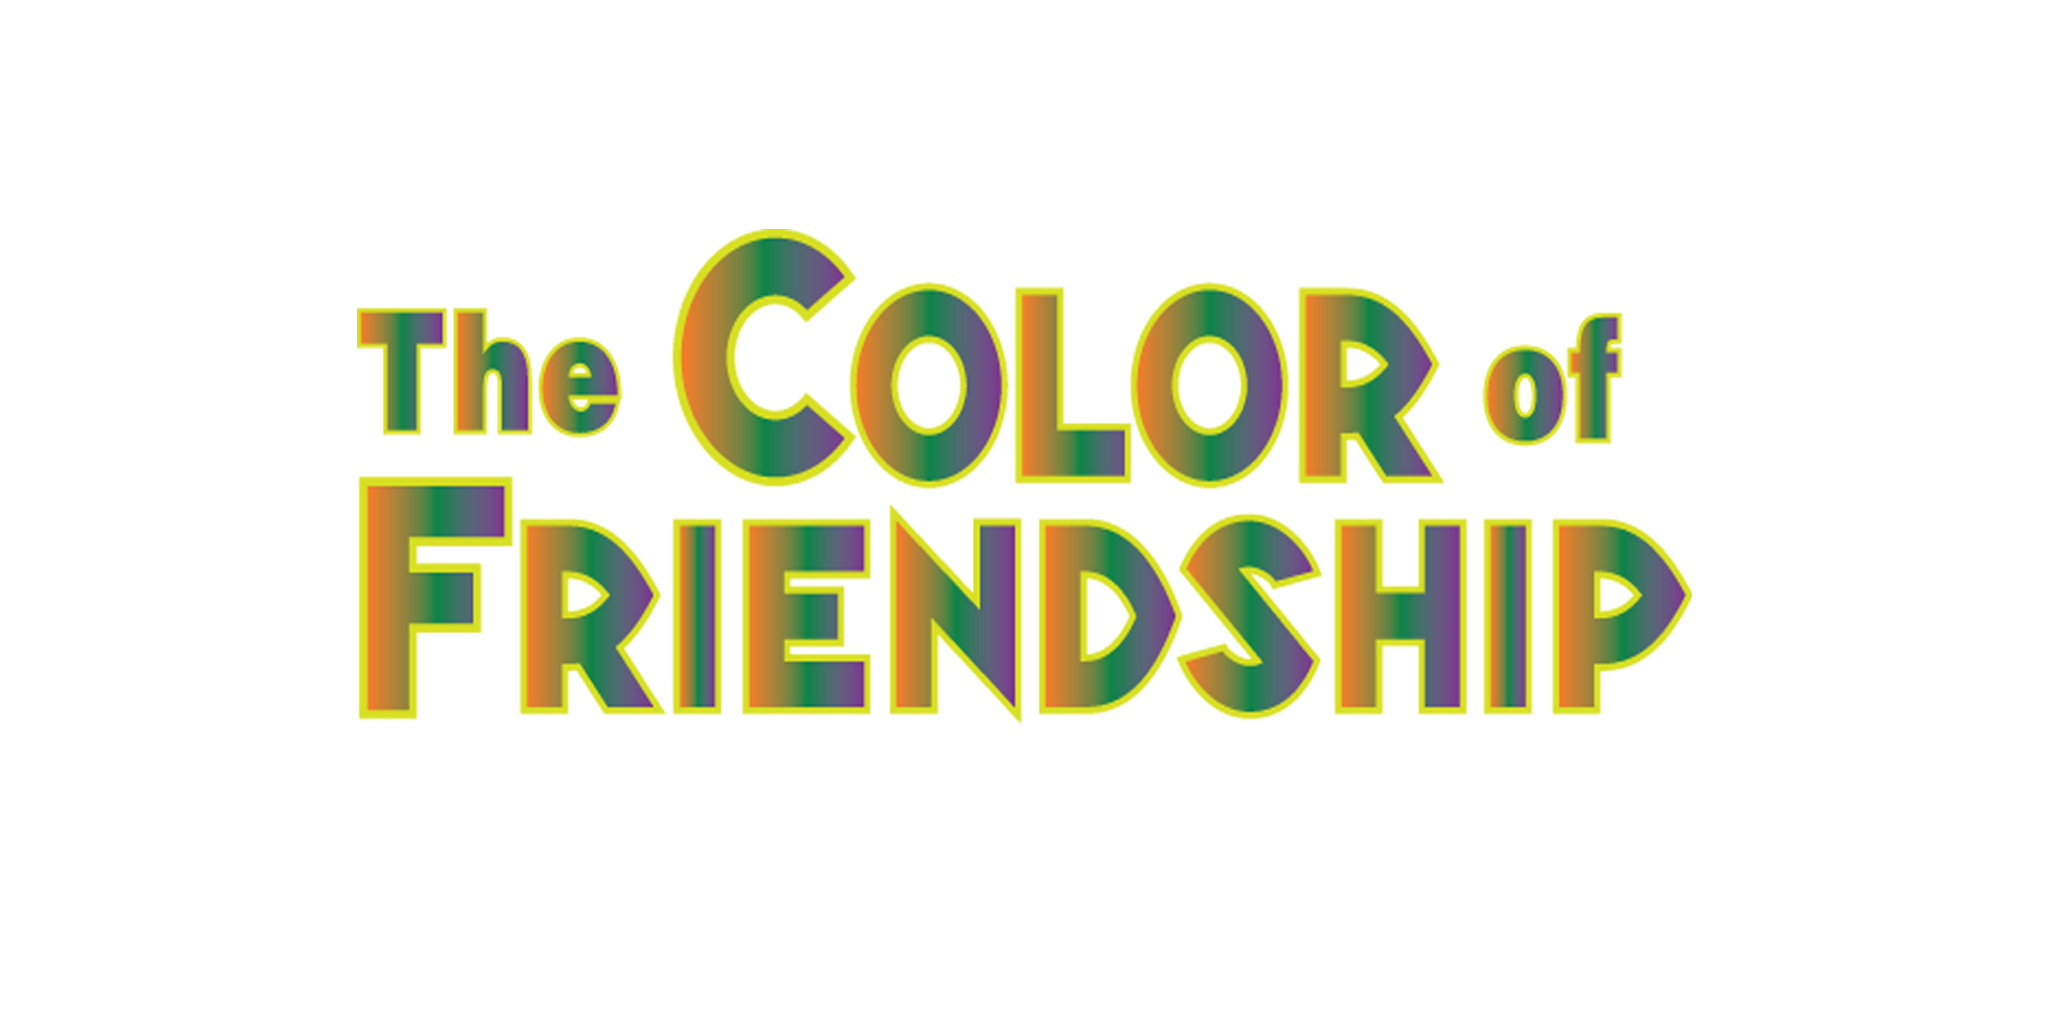 The Color of Friendship